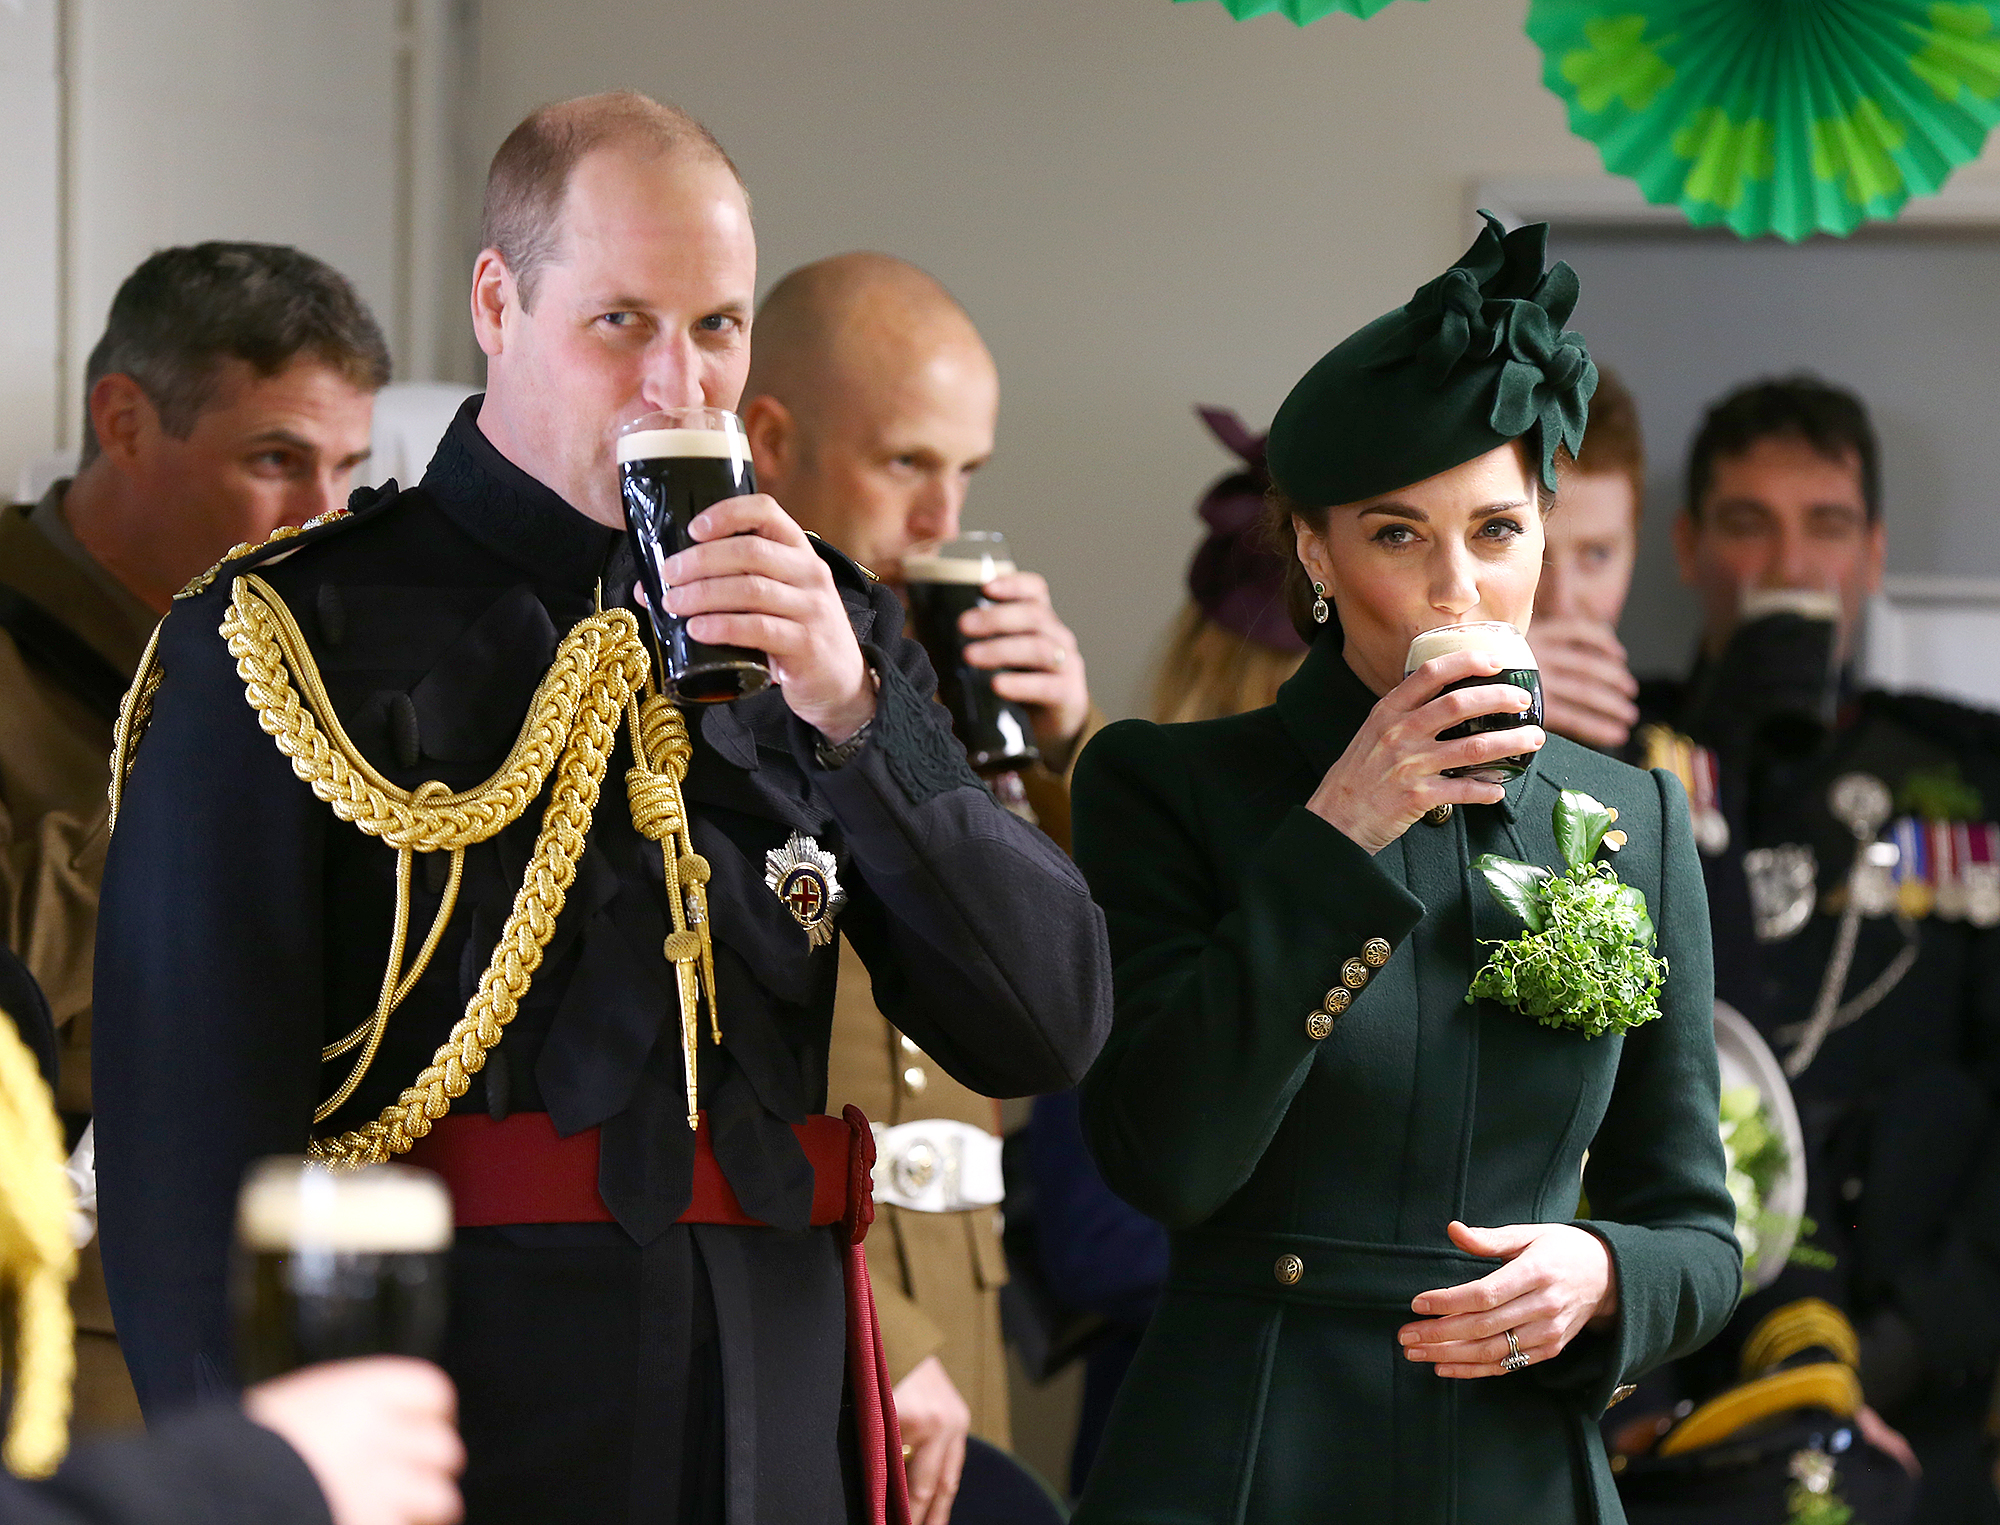 prince-william-duchess-kate-drinking-beer - HOUNSLOW, ENGLAND – MARCH 17: Catherine, Duchess of Cambridge and Prince William, Duke of Cambridge enjoy a pint of Guinness after attending the St Patrick's Day parade at Cavalry Barracks on March 17, 2019 in Hounslow, England. (Photo by Gareth Fuller – WPA Pool/Getty Images)